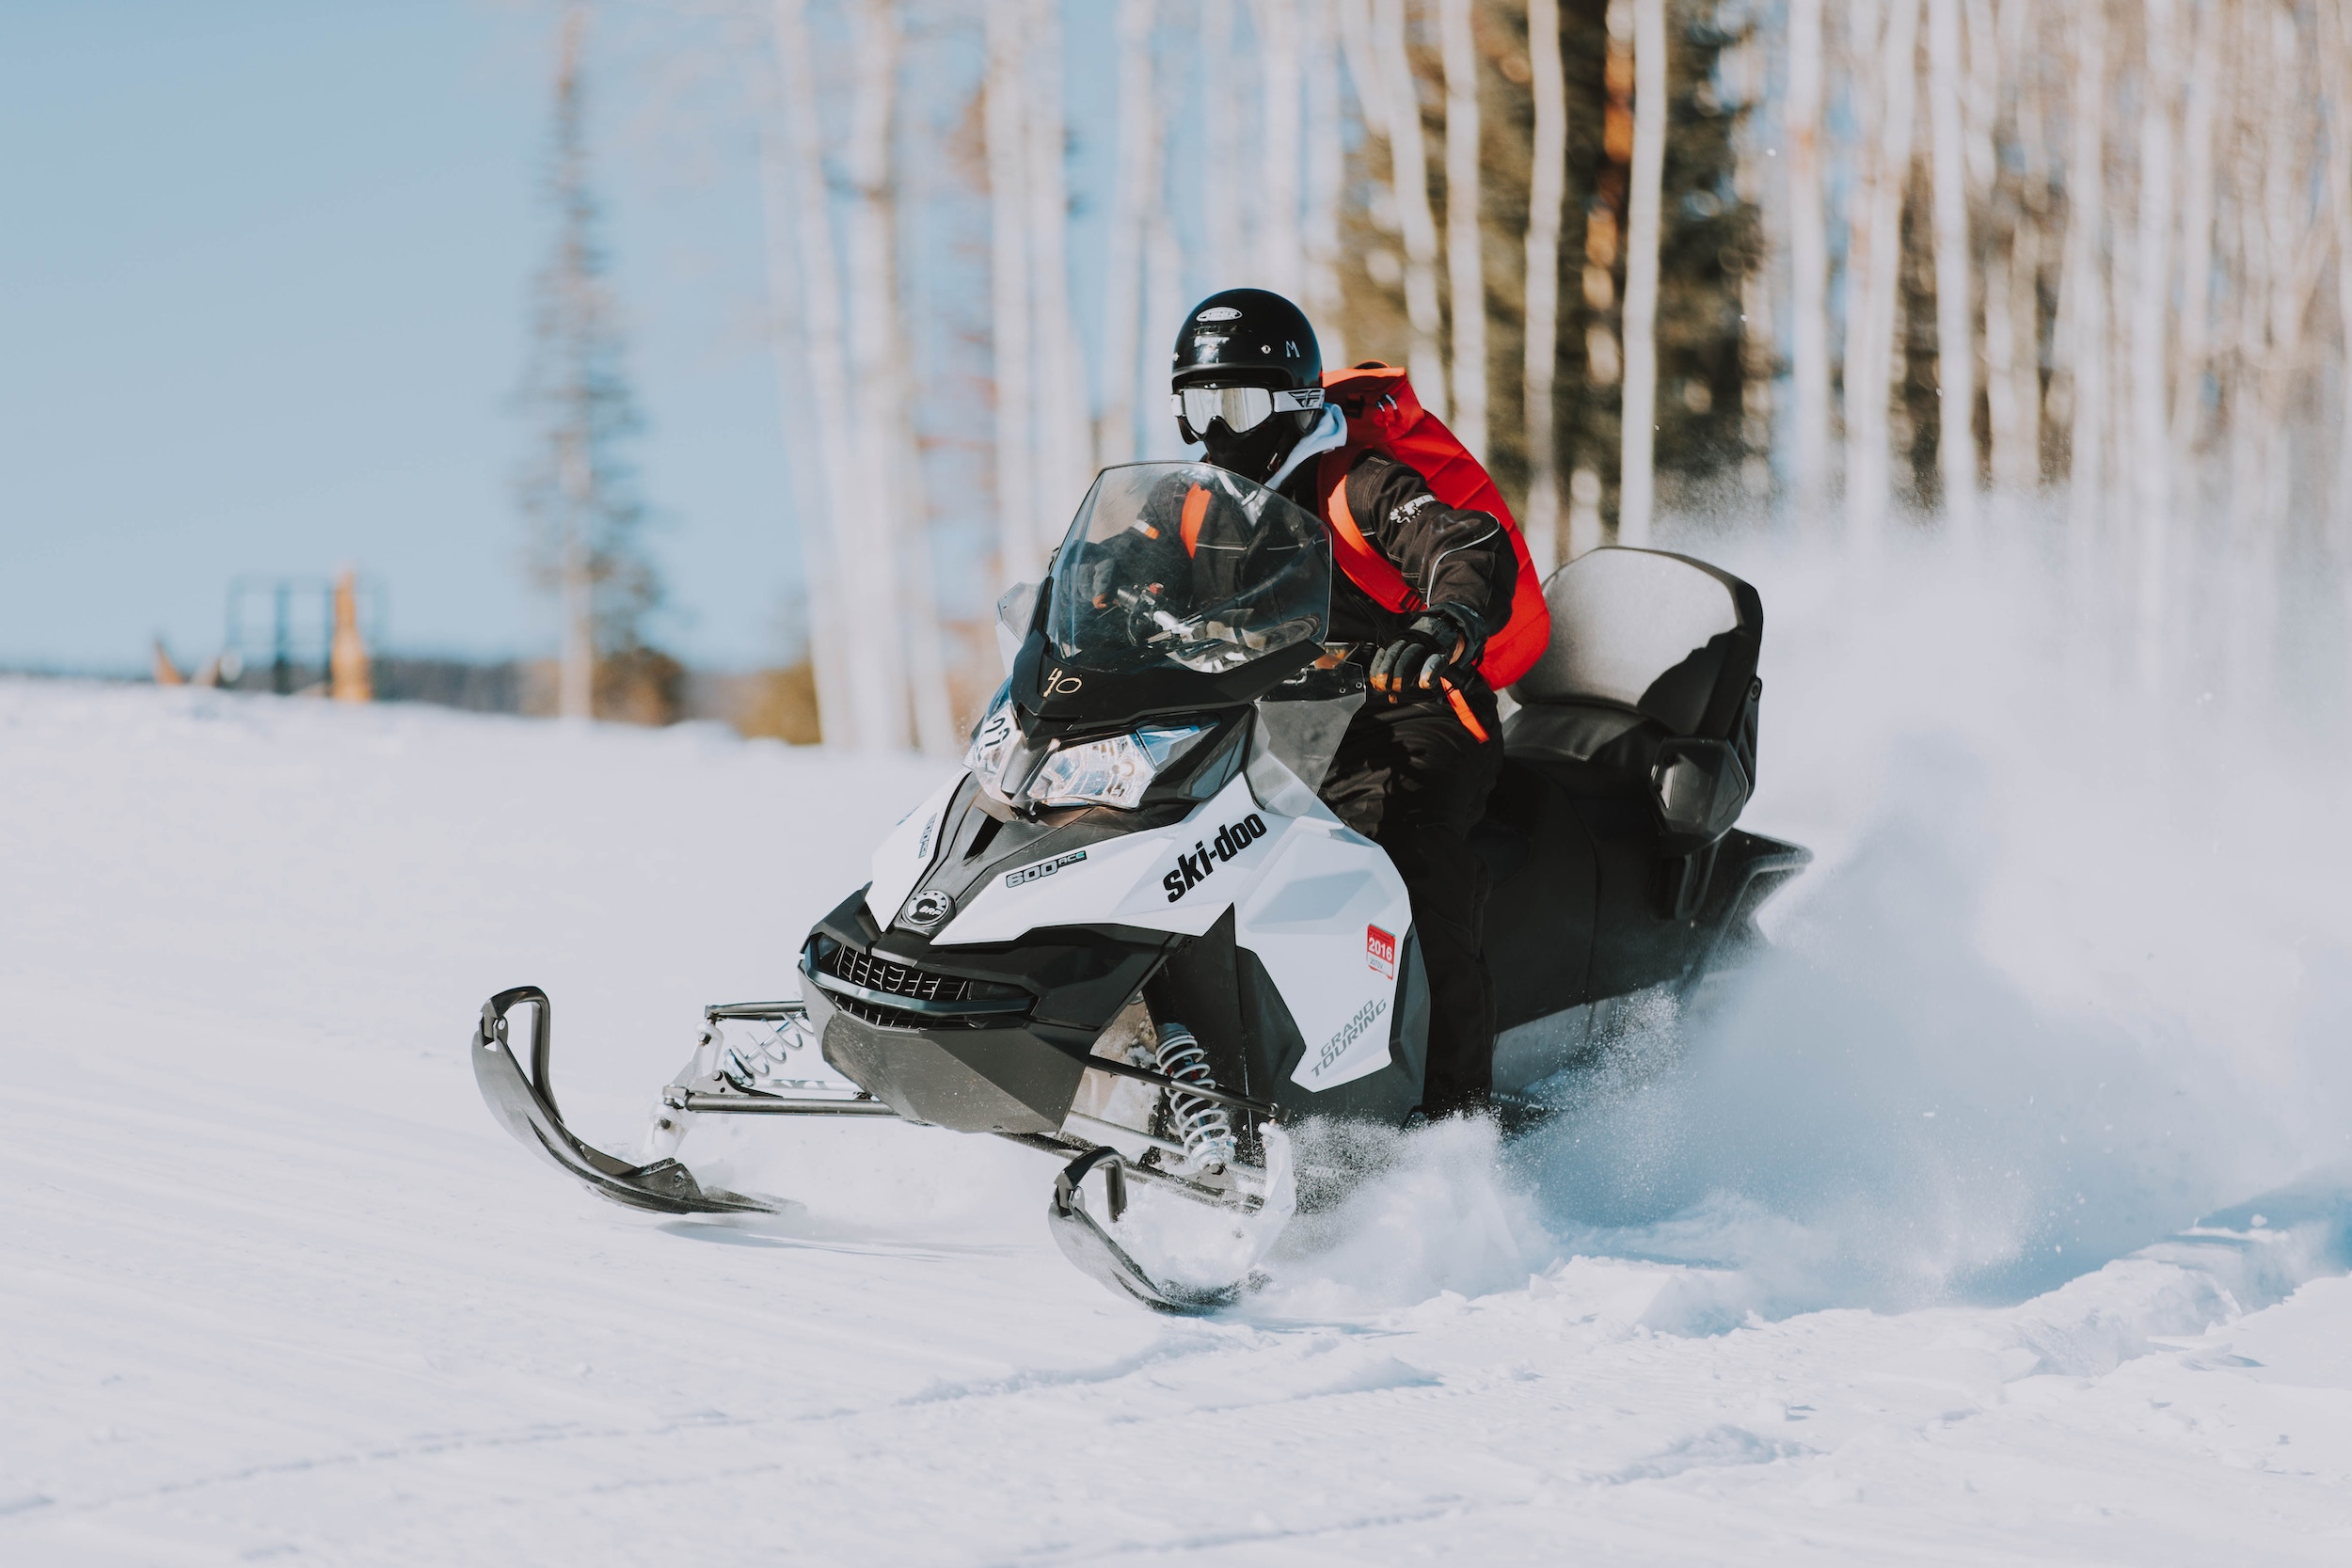 Can I get a DWI on a snowmobile?